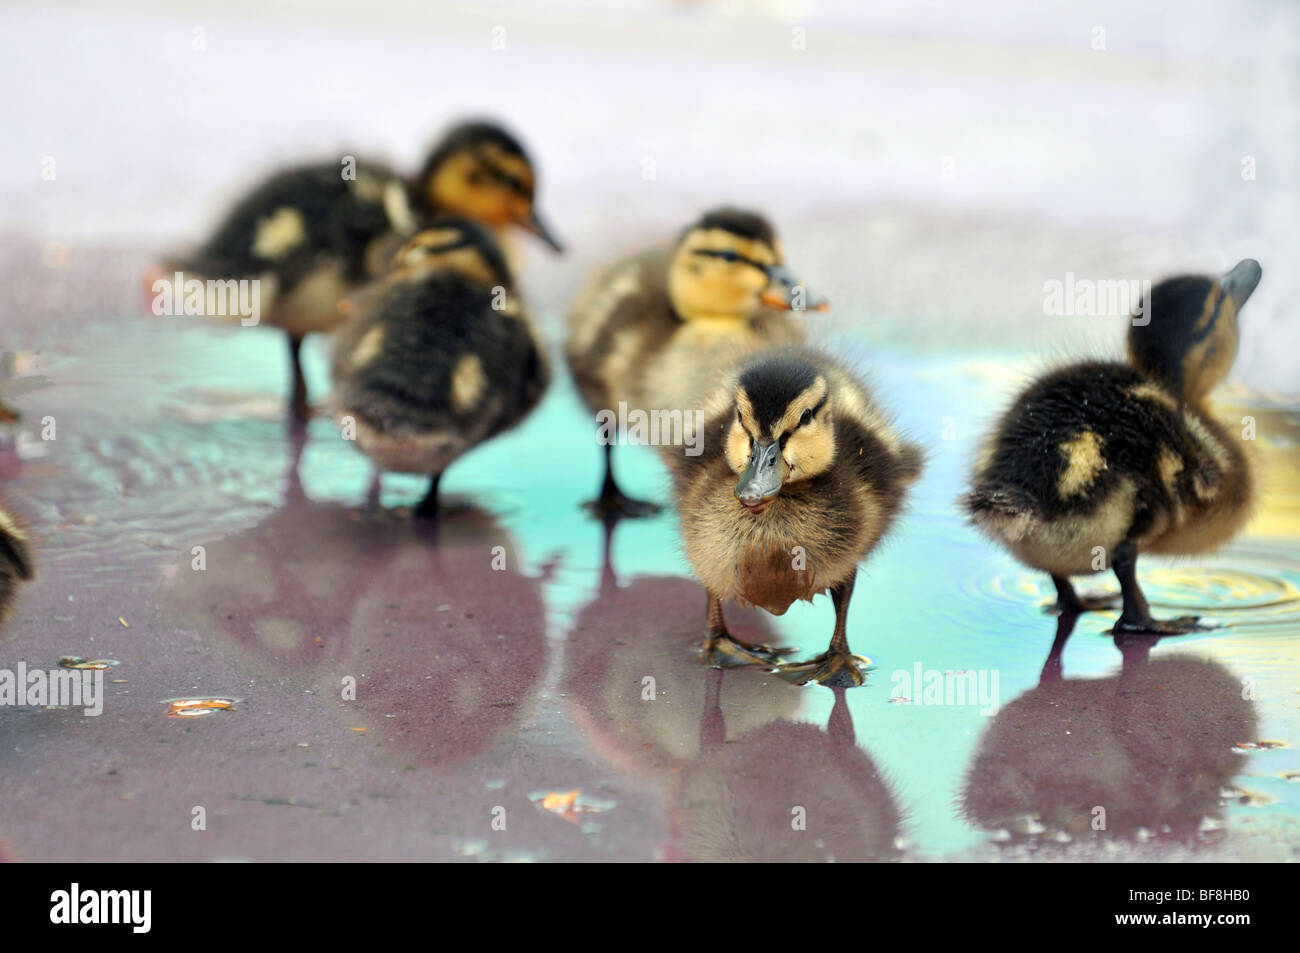 Mallard Ducklings playing in shallow water - Stock Image